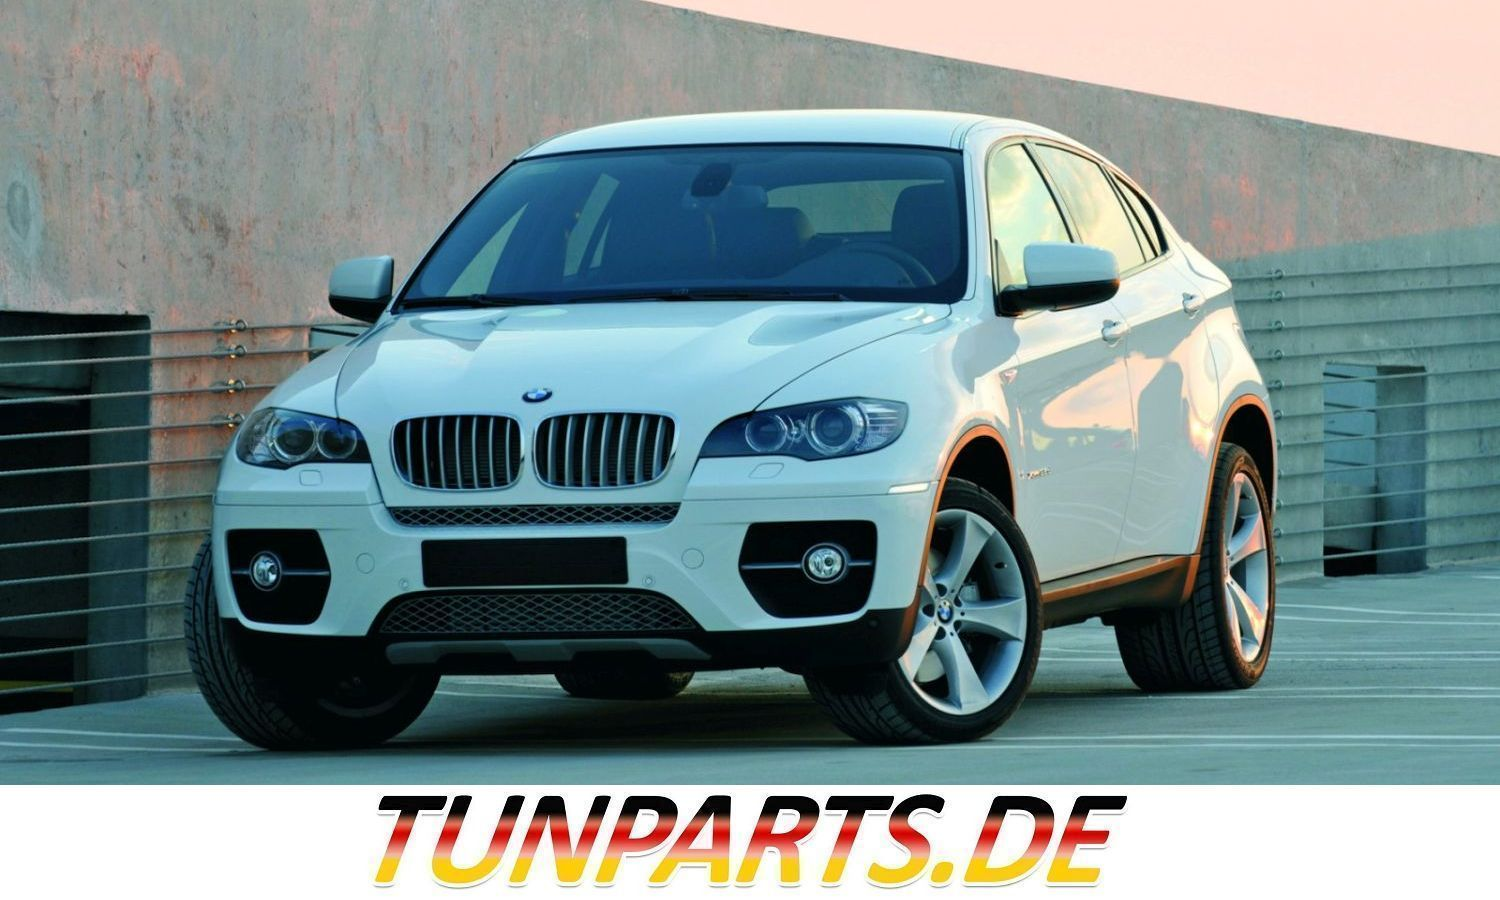 bmw x6 scheinwerfer glas hier g nstig kaufen. Black Bedroom Furniture Sets. Home Design Ideas